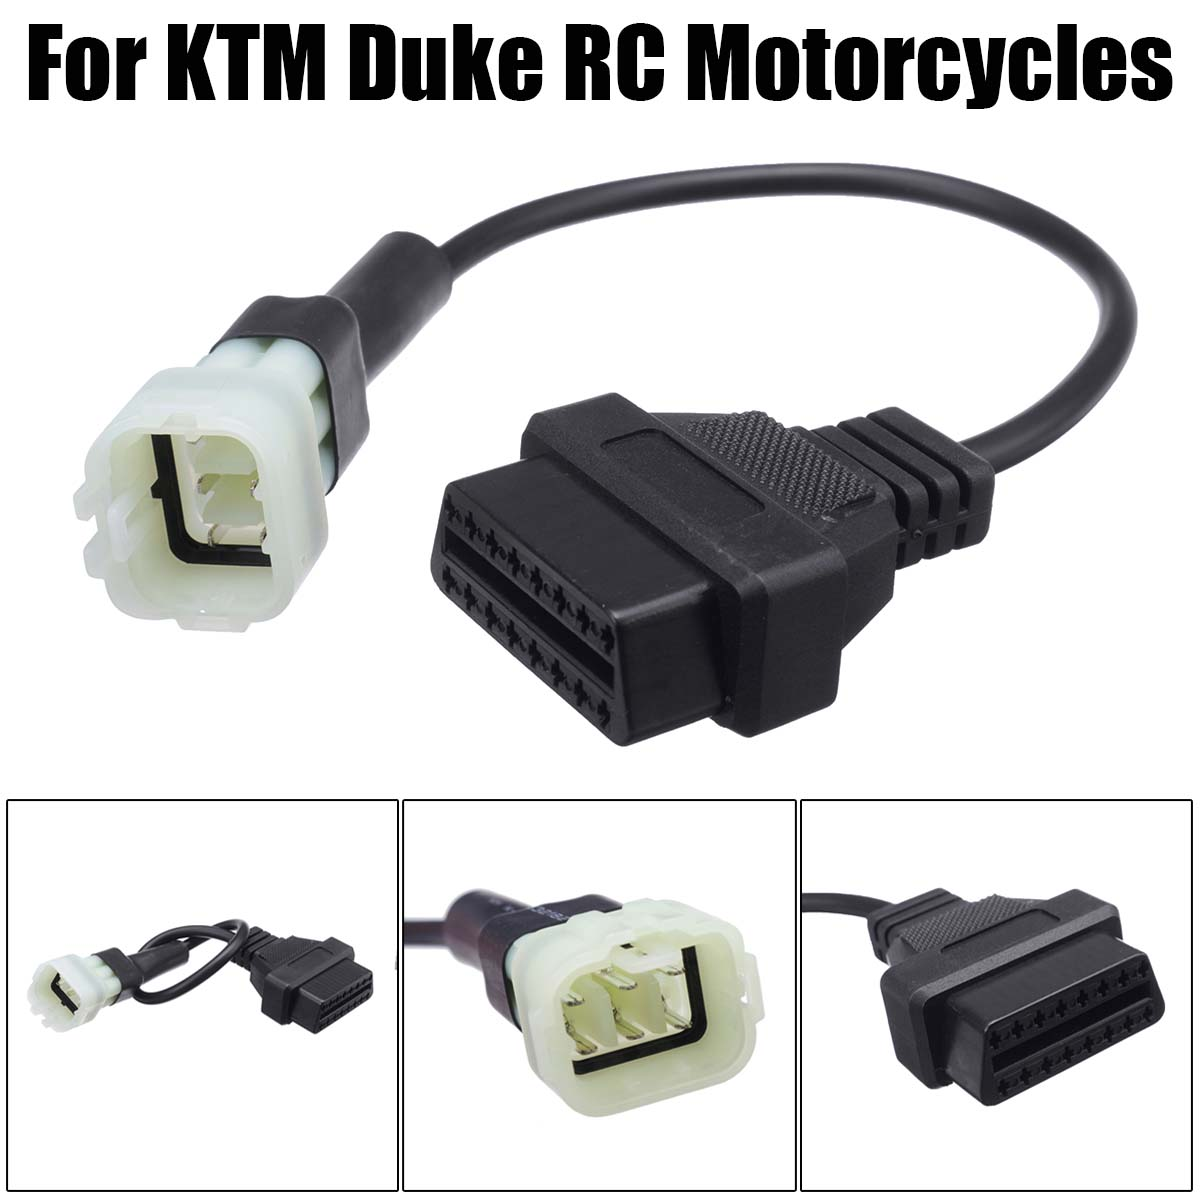 NEW 1Pcs 6 Pin To OBD 16 Pin Adapter 6 Pin To OBD2 Cable For For KTM Duke RC Motorcycles 2011~2017 Motorbikes ECU